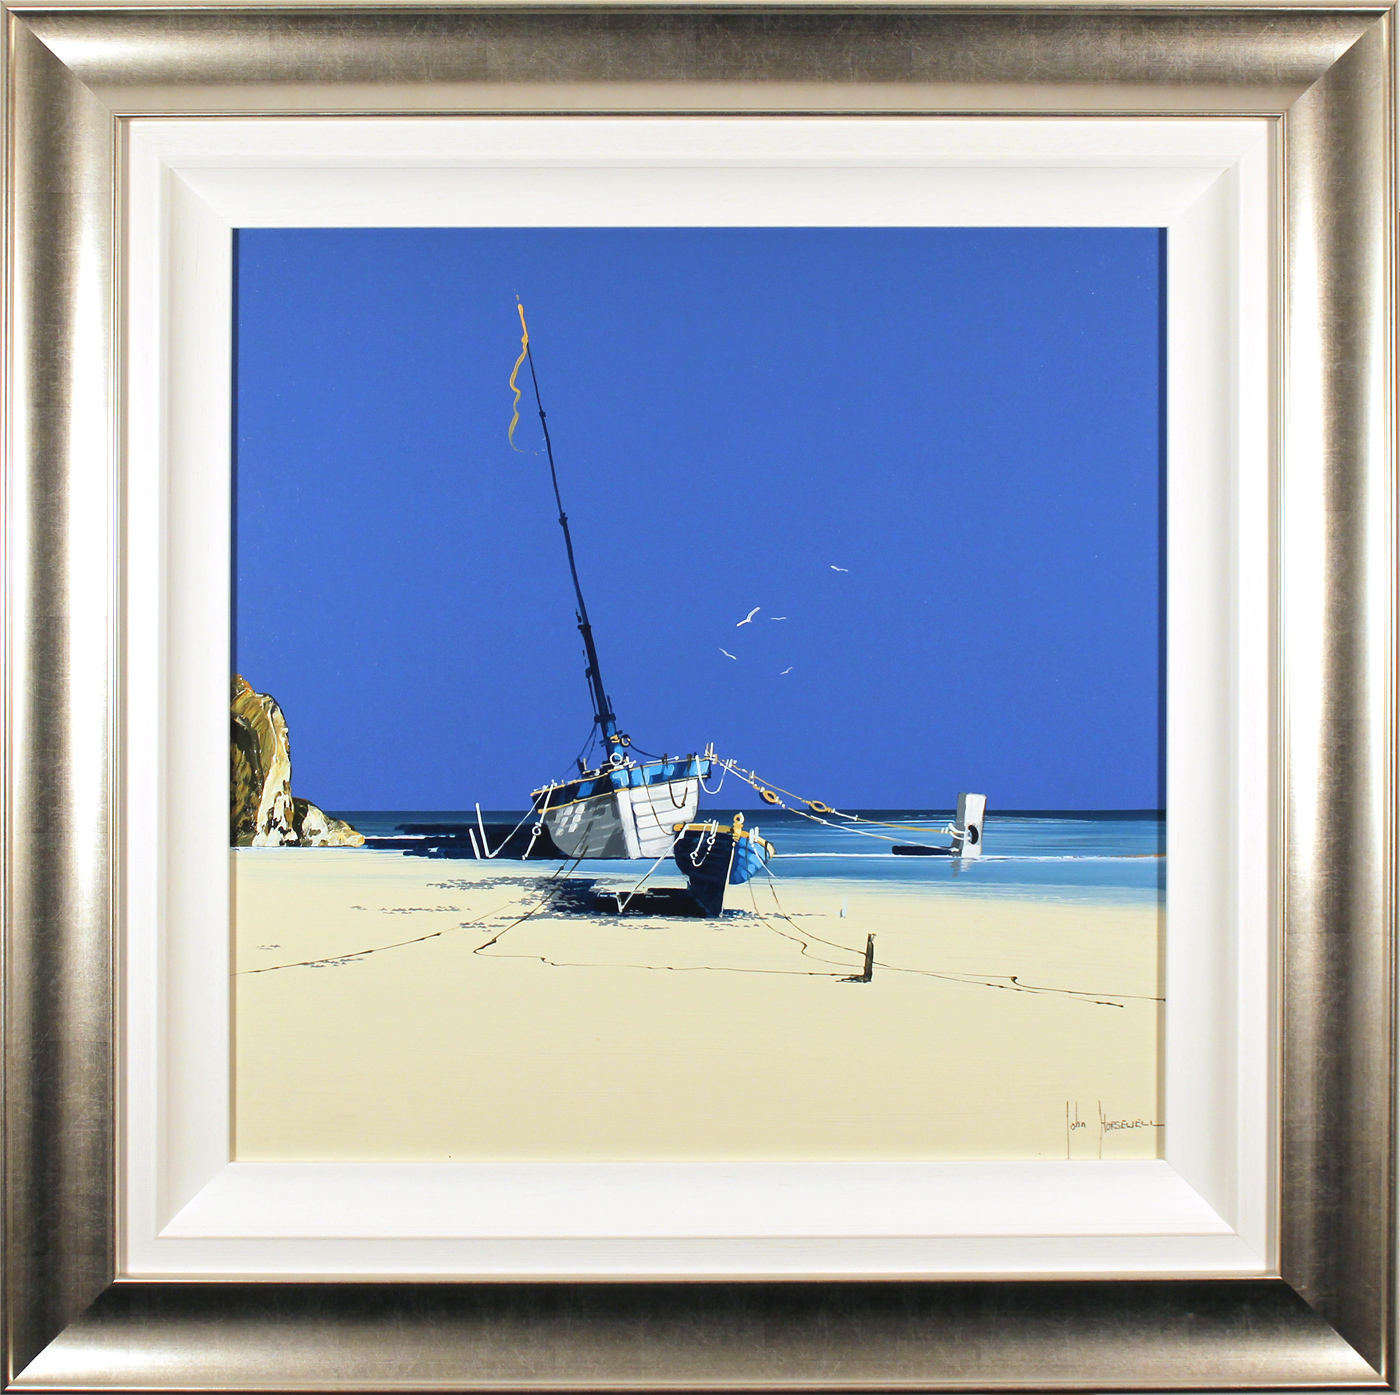 John Horsewell, Original acrylic painting on board, Coastline Dream, click to enlarge